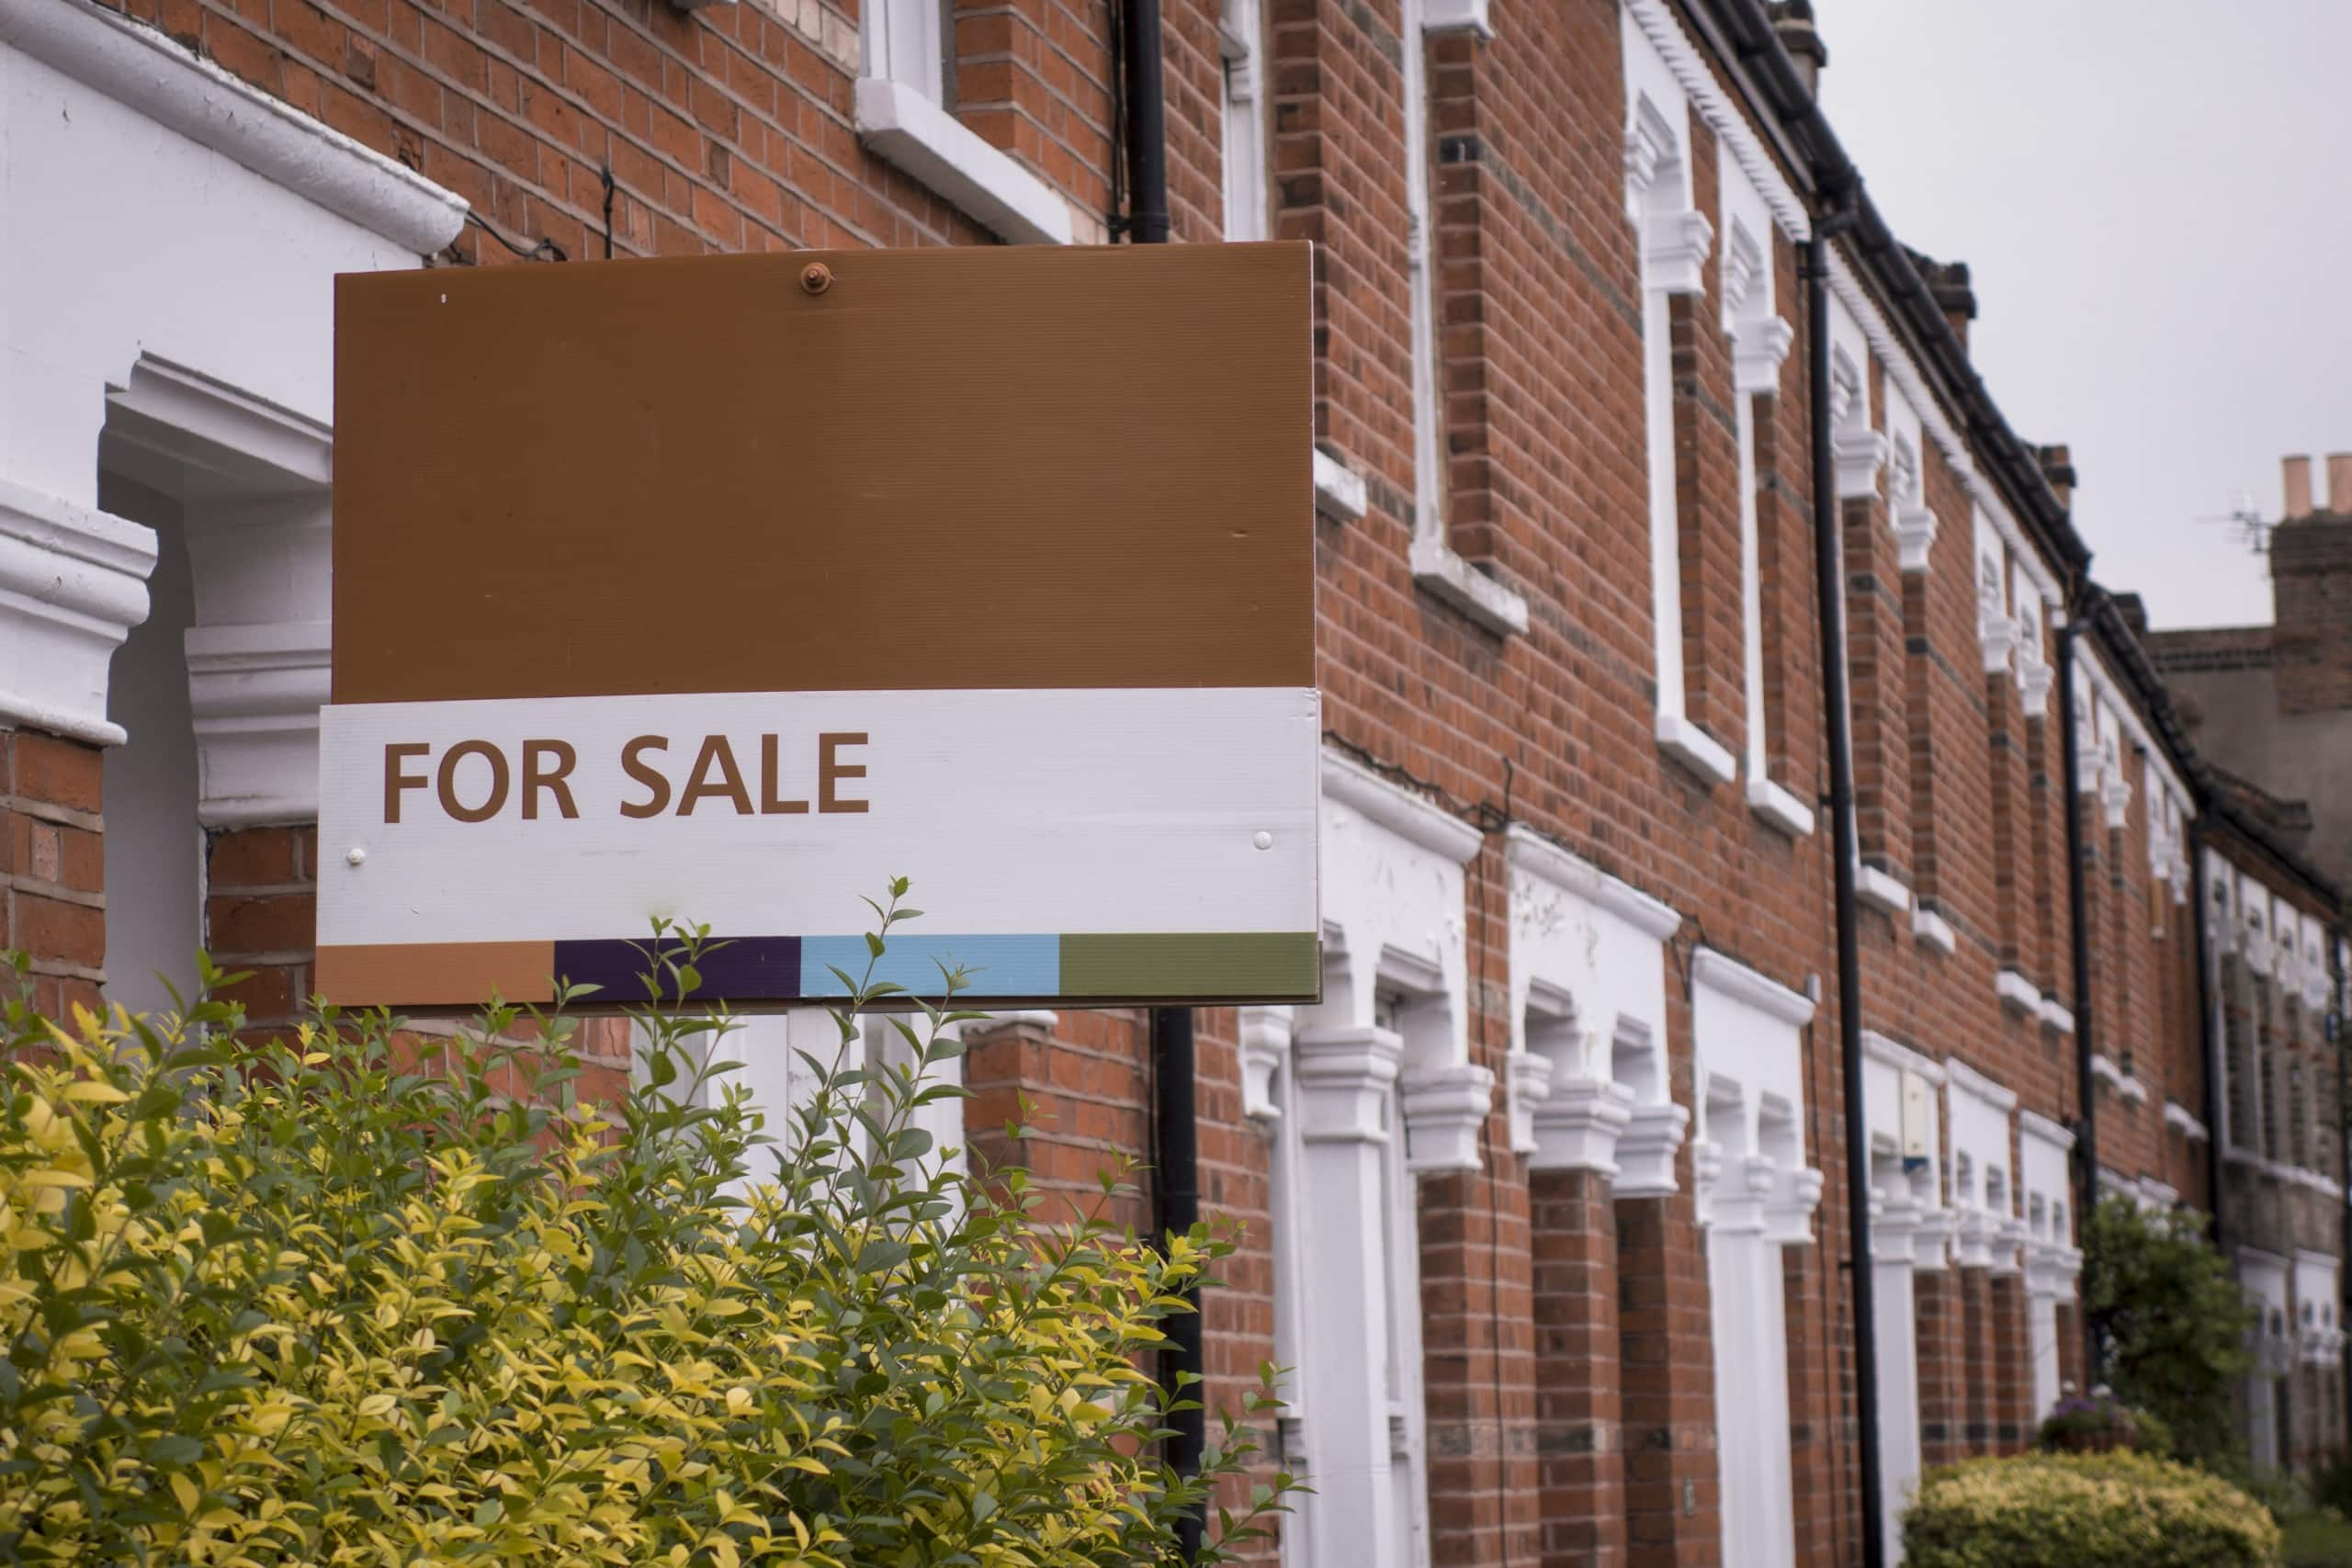 Estate Agent 'For Sale' sign board